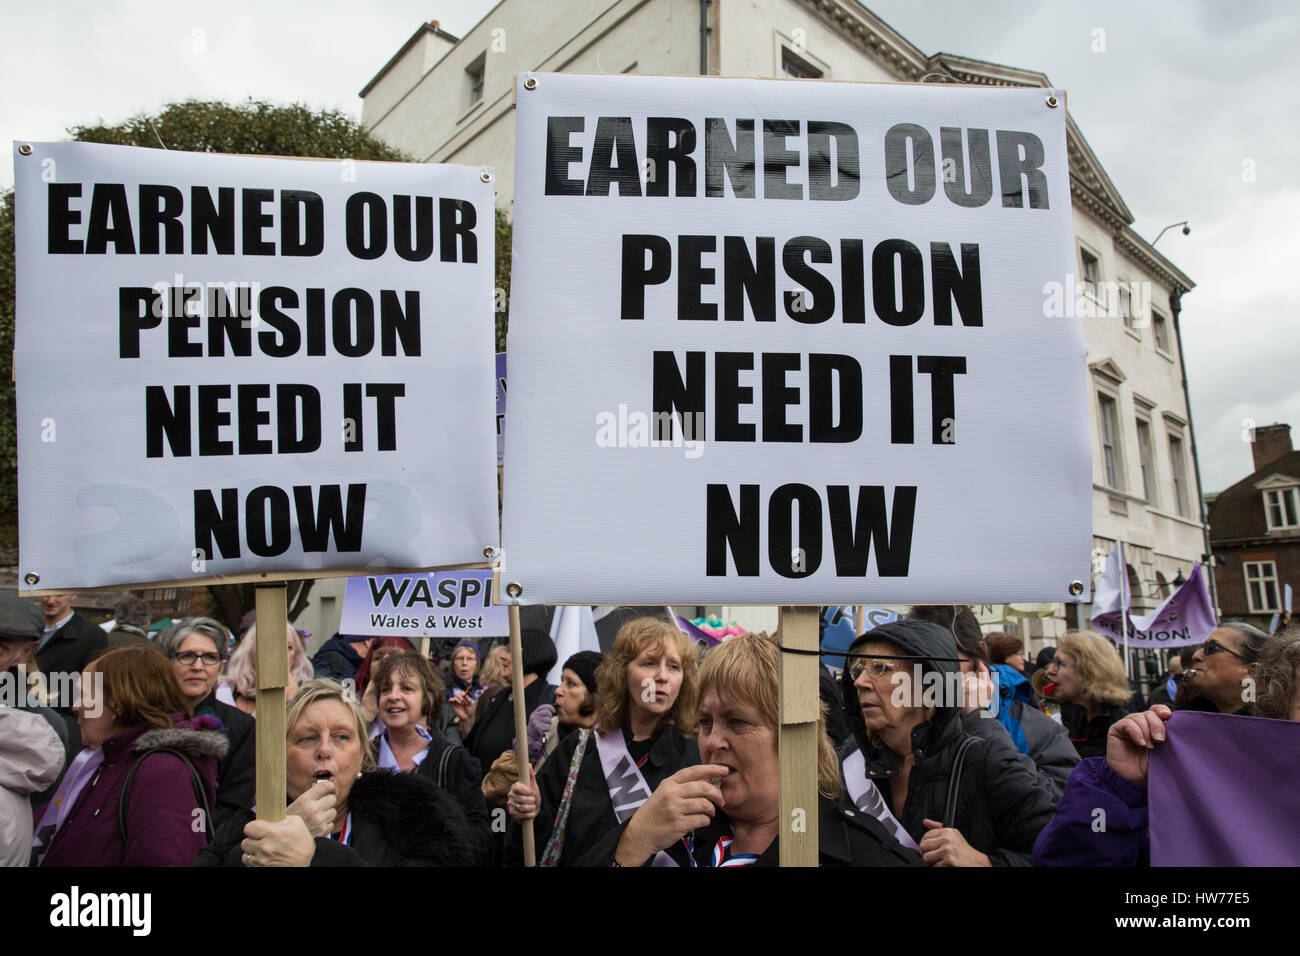 London, UK. 8th March, 2017. Campaigners from Women Against State Pension Inequality (WASPI) protest outside Parliament - Stock Image